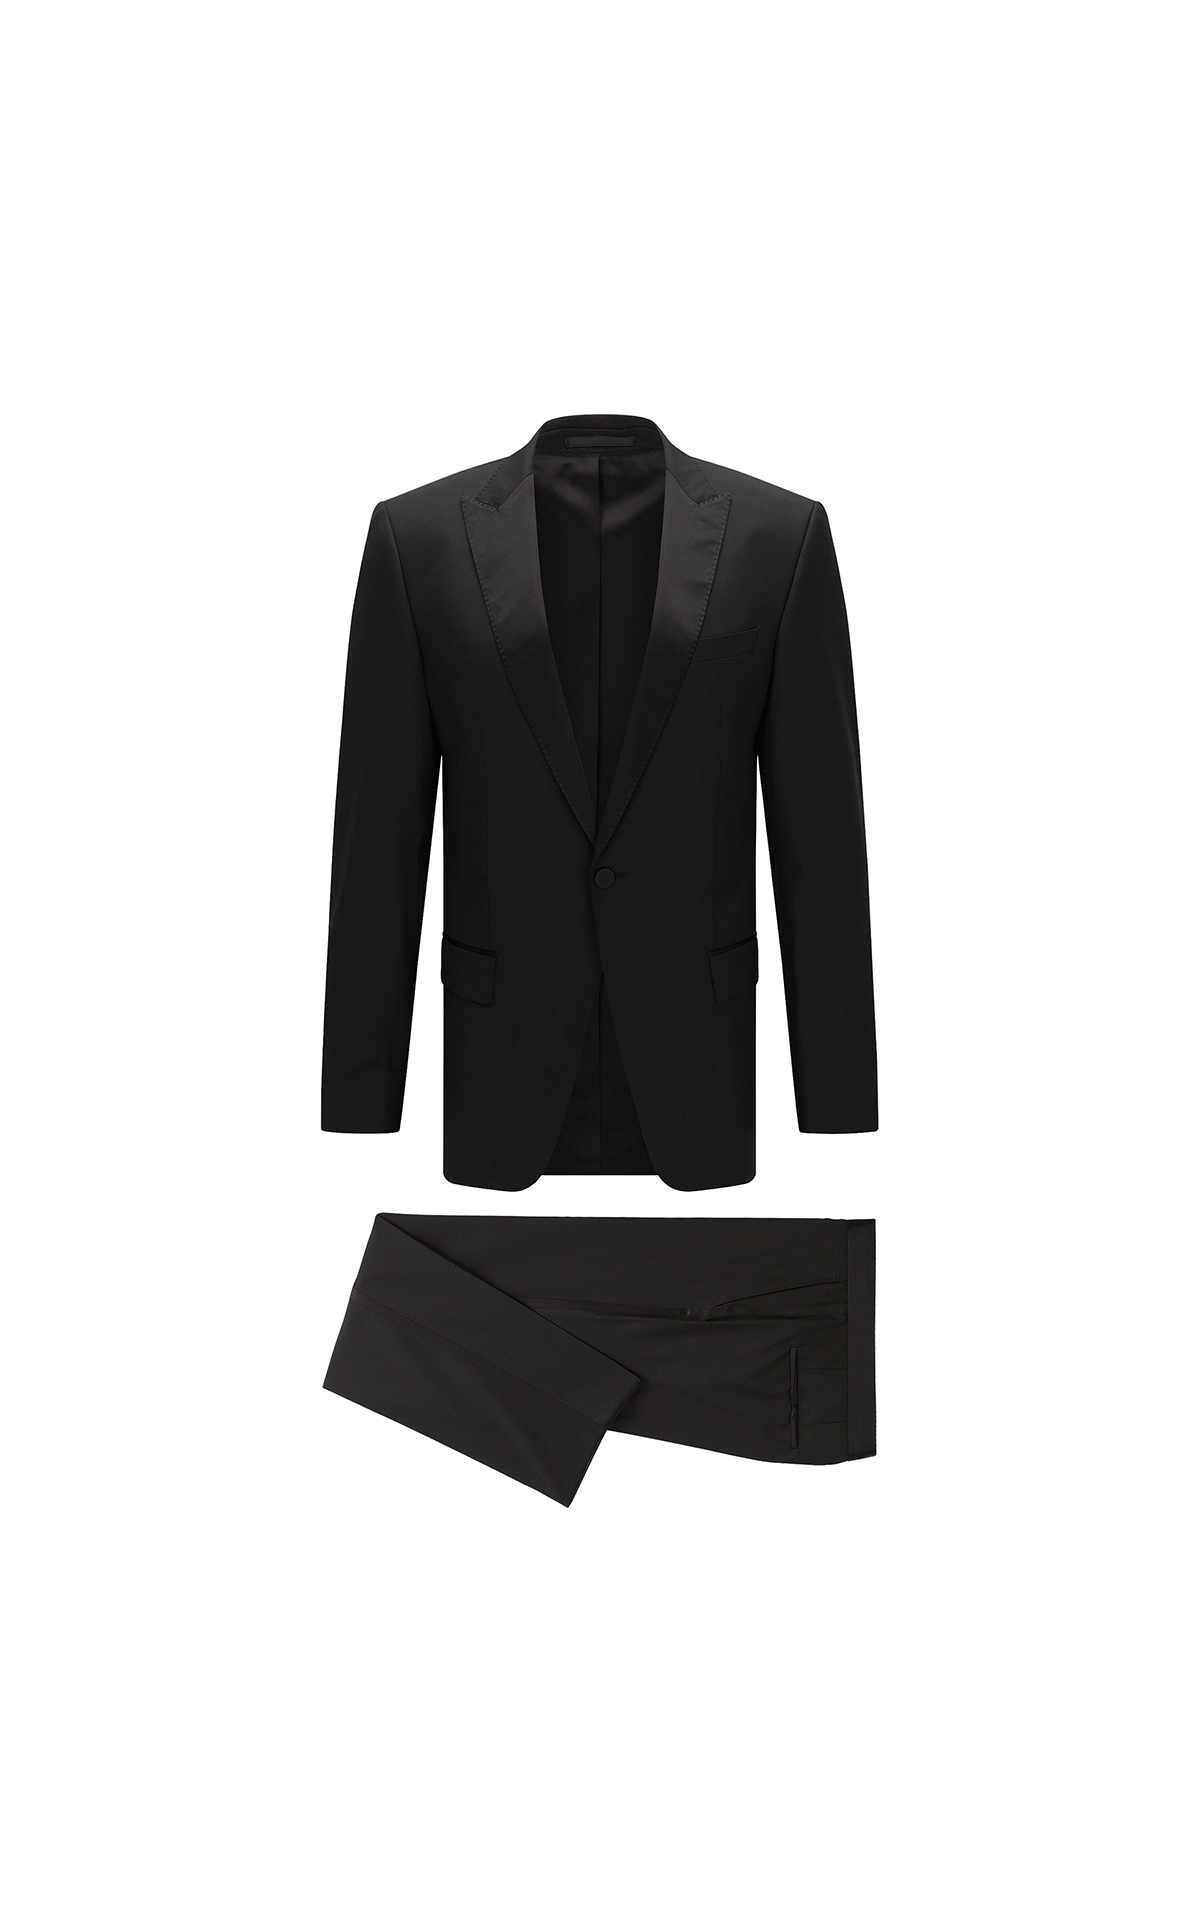 BOSS Men's slim-fit tuxedo at The Bicester Village Shopping Collection